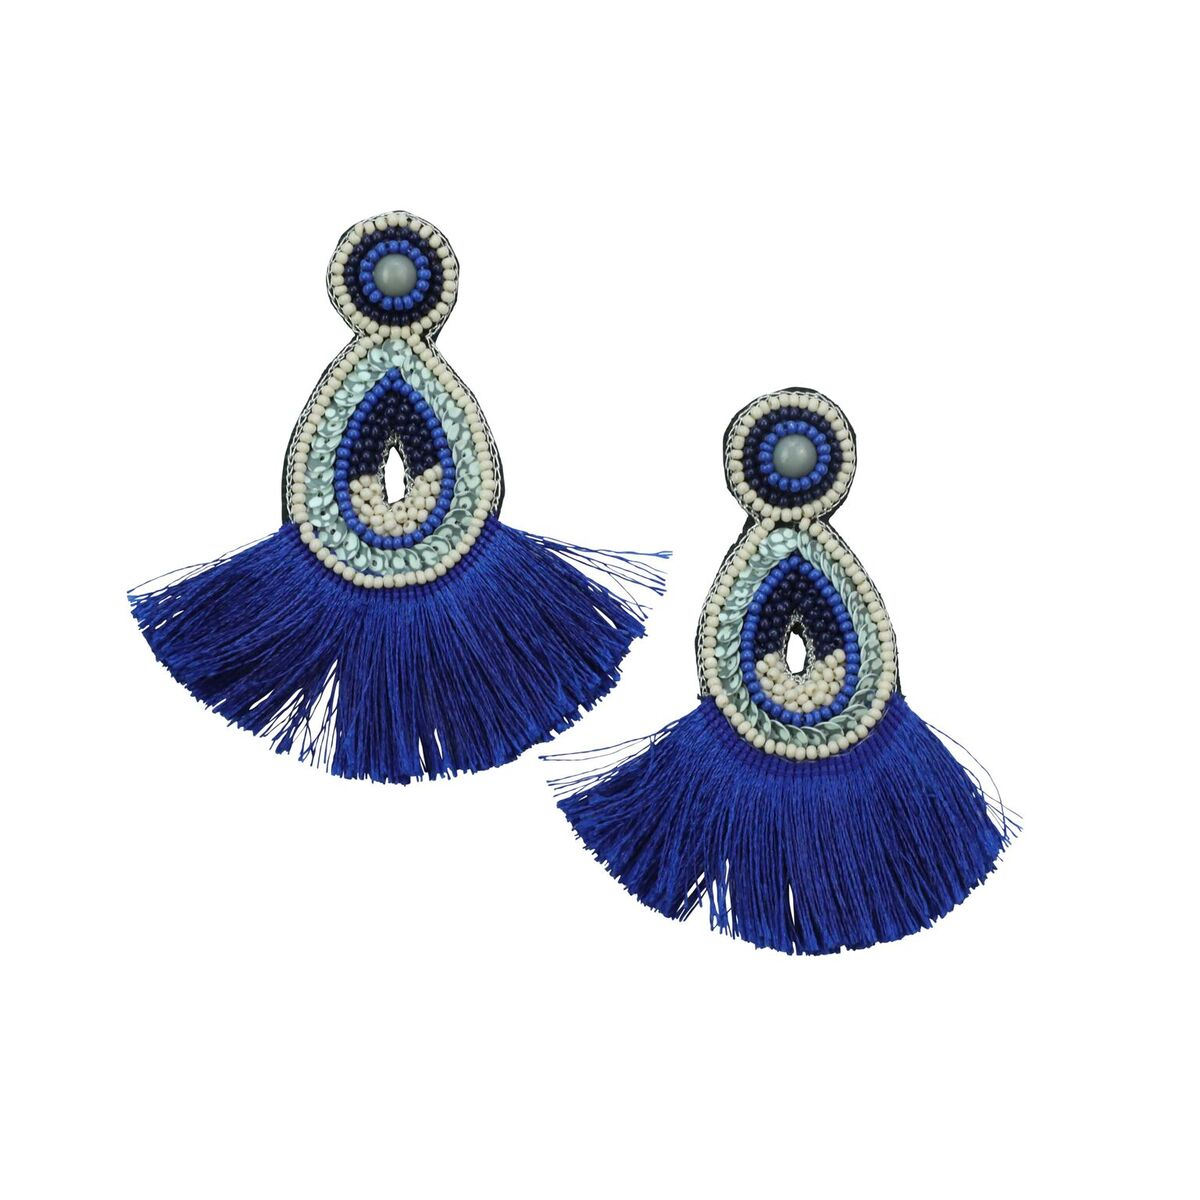 BEADS & FRINGE EARRING - BLUE